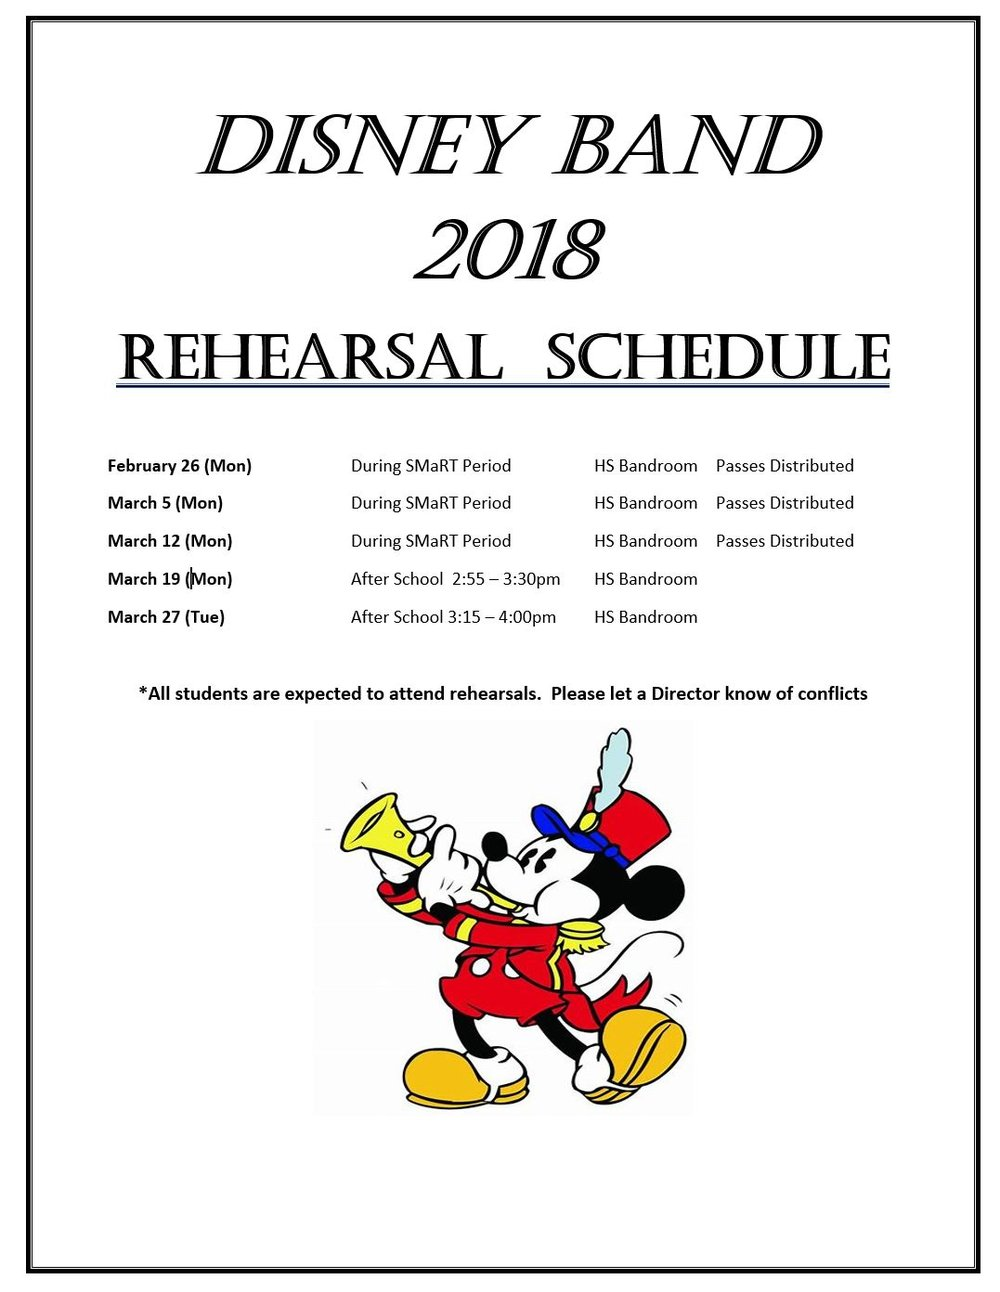 disney band rehearsal schedule.JPG